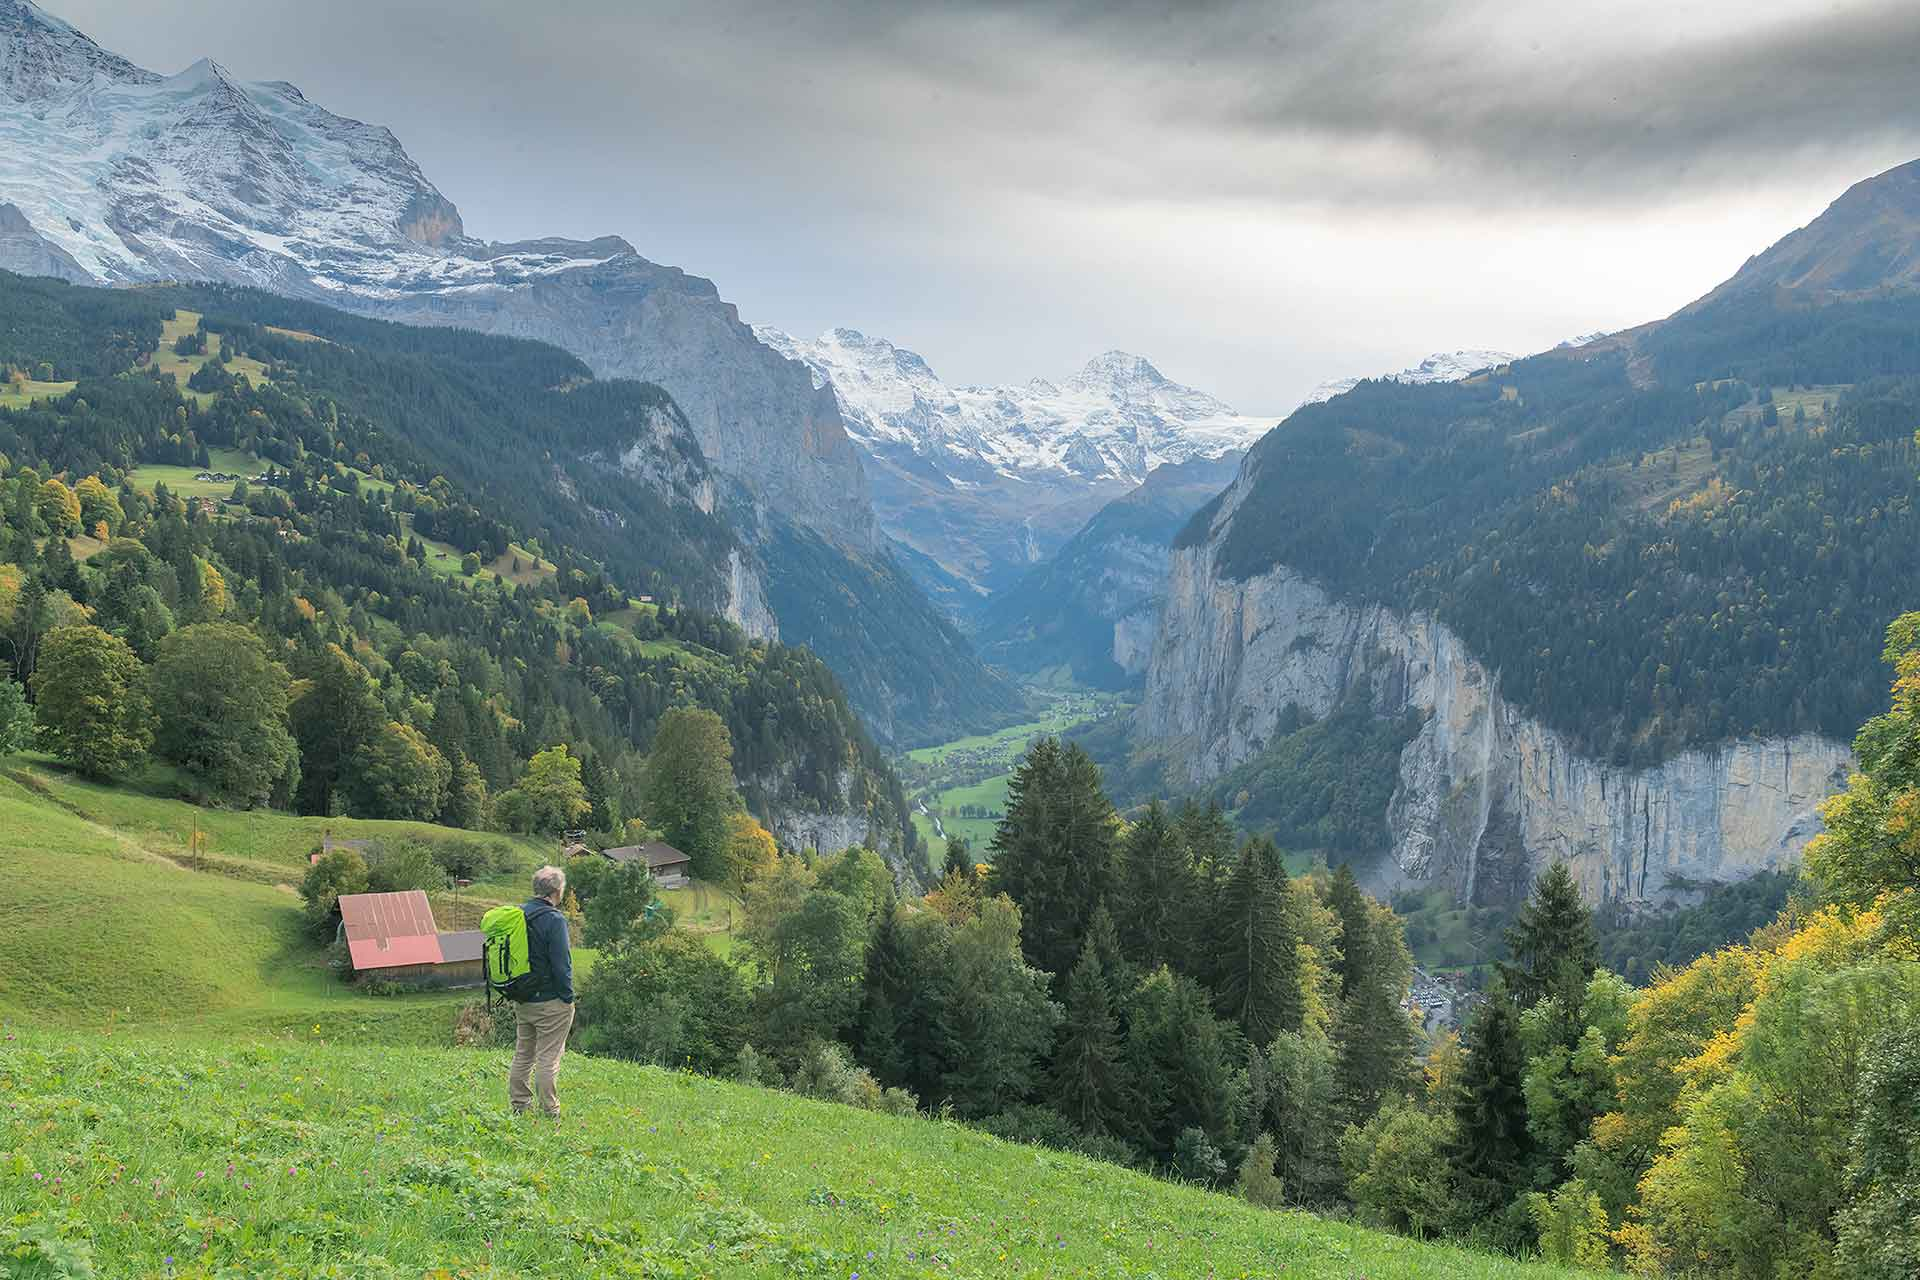 Photographer Lauterbrunnen